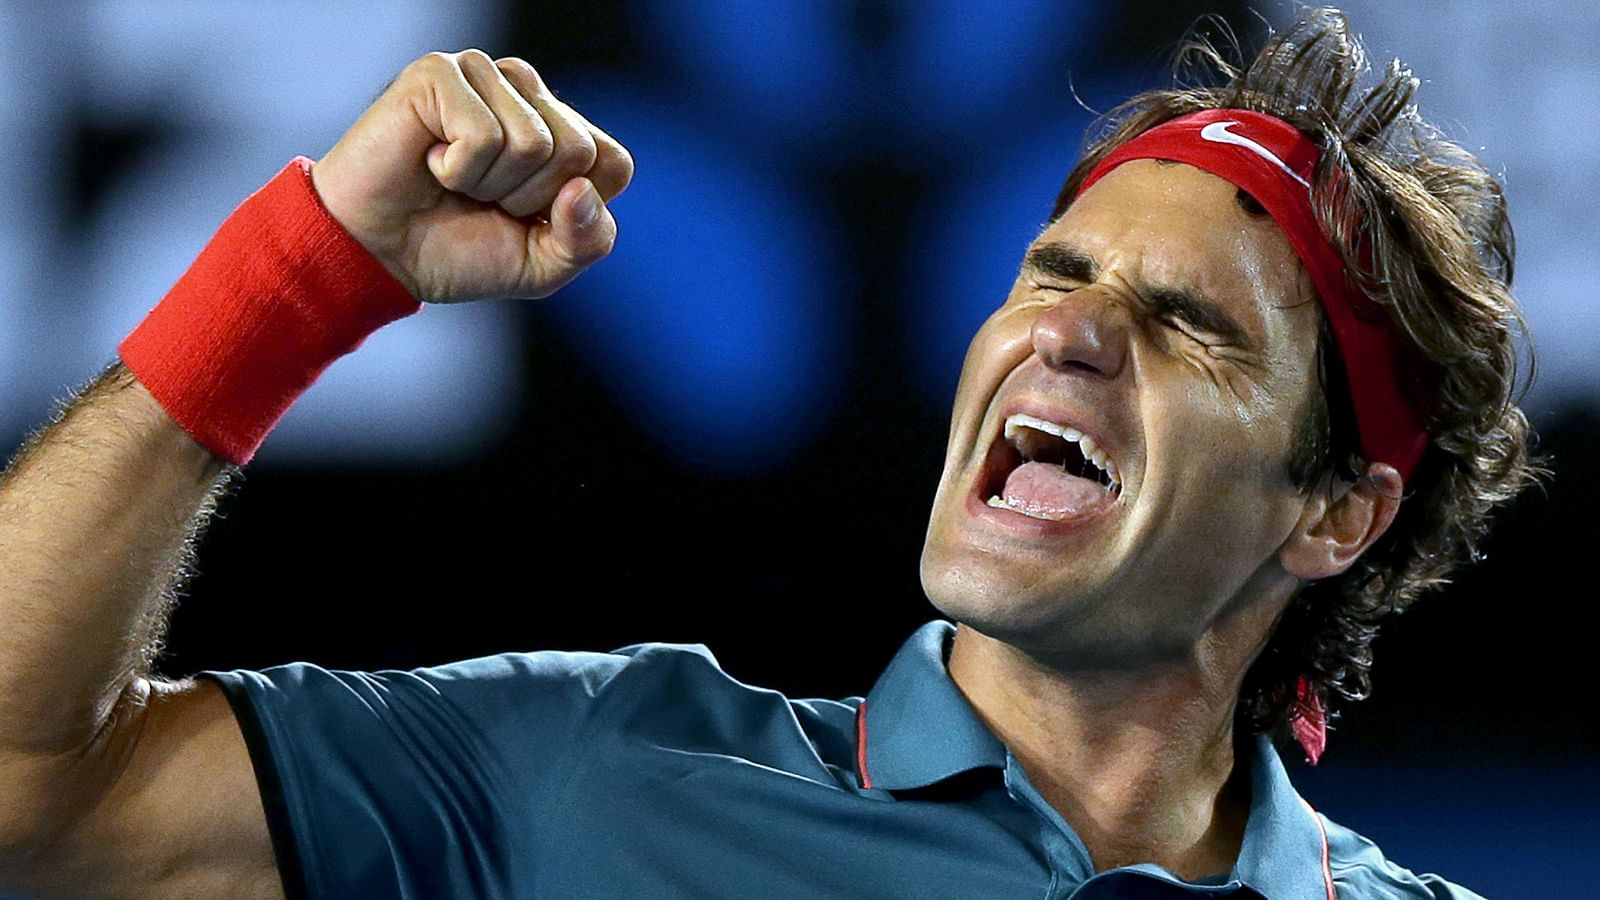 year for Roger Federer after a disappointing 2013 season. Federer ...